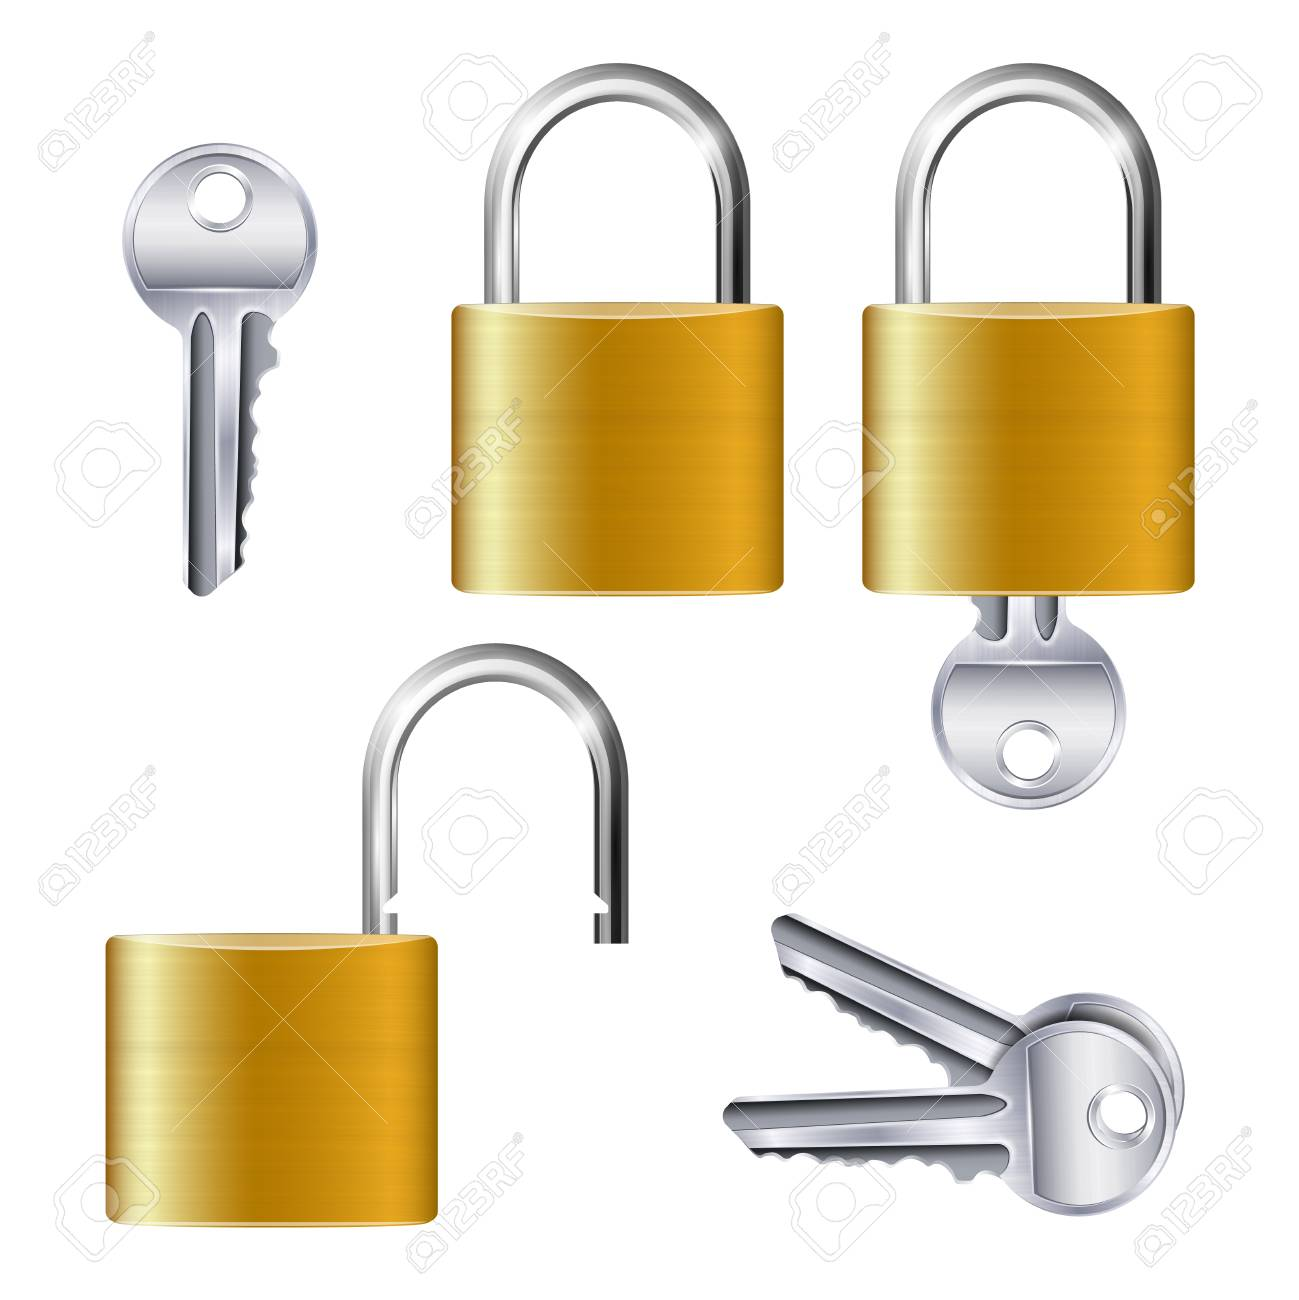 Realistic set of identical gold metallic open and closed padlocks and keys on white background isolated vector illustration - 128160647